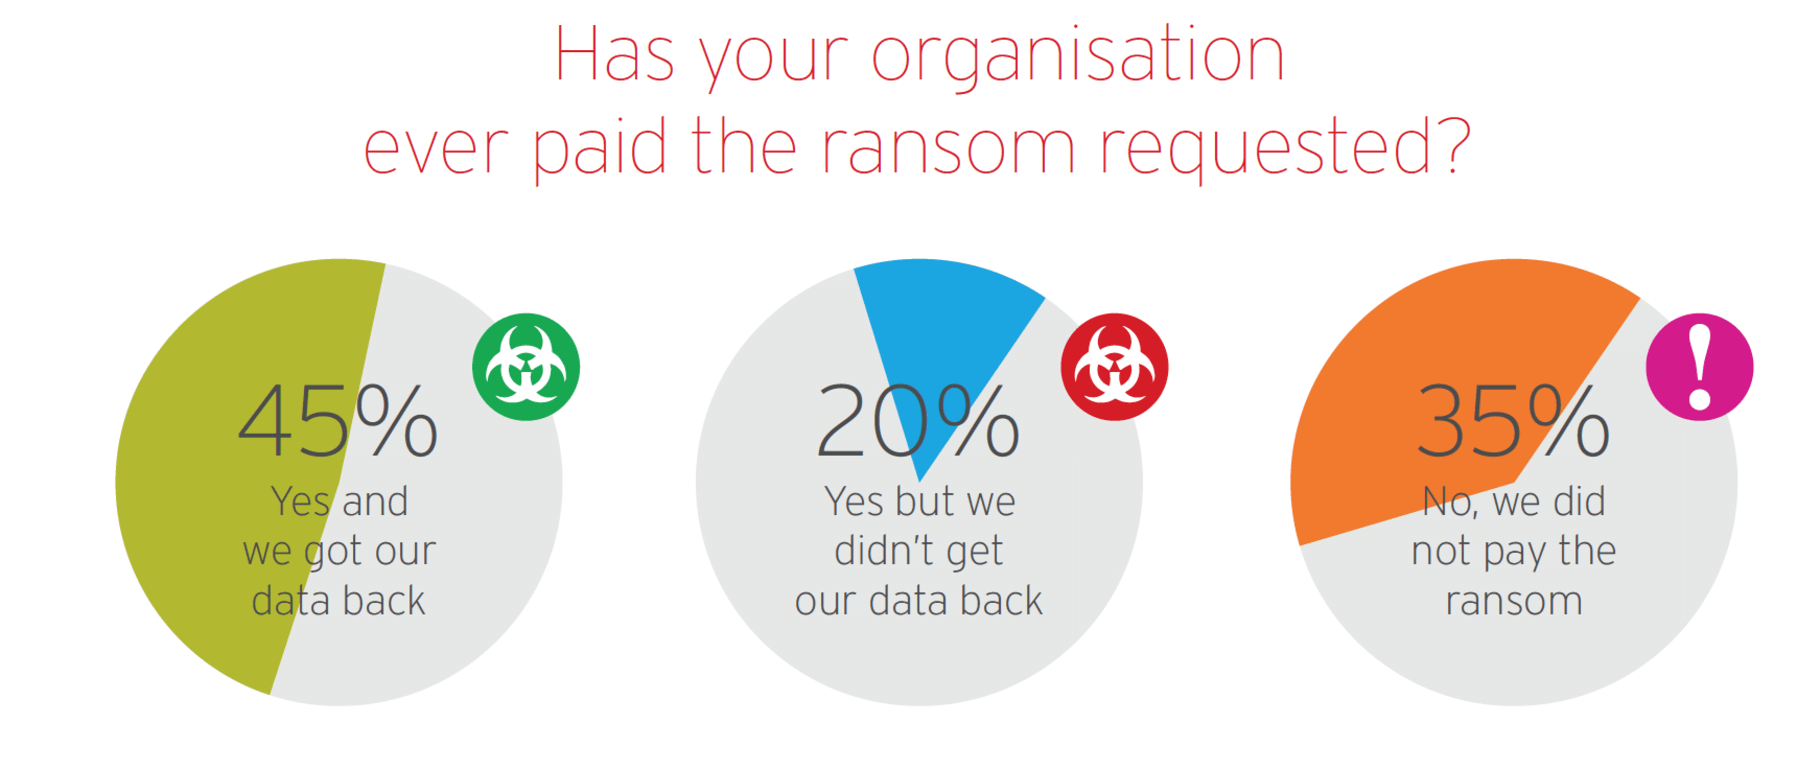 Success rate for ransomware. Source: Trent Micro - New Research: Uncovering the Truth About Ransomware.